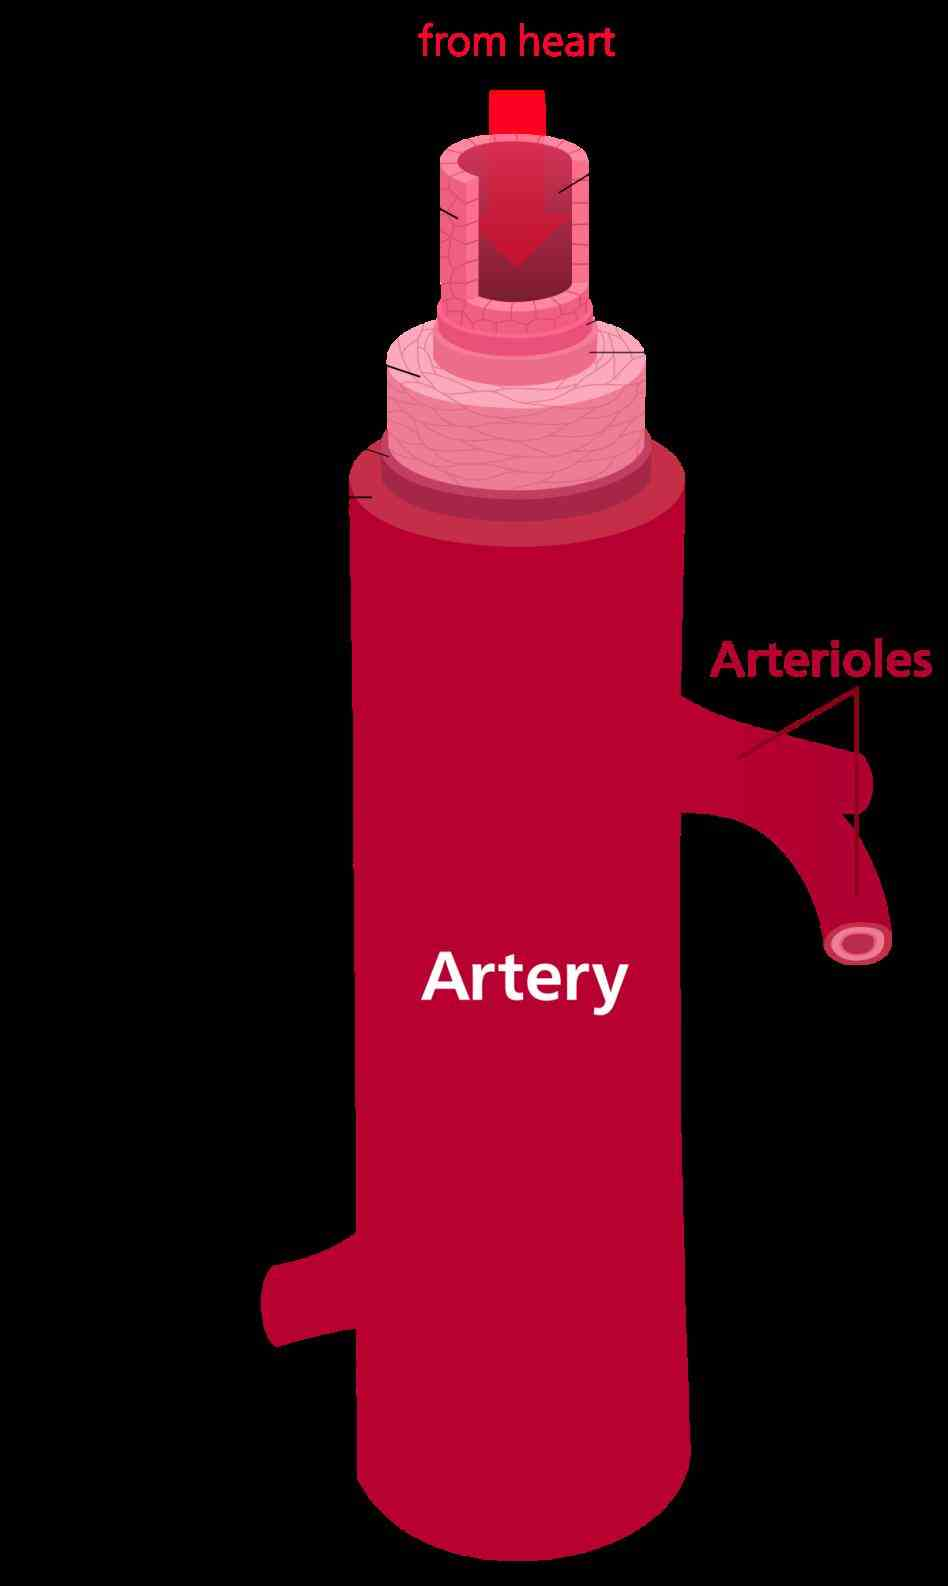 All Arteries Carry Oxygenated Blood Except Pictures Wallpapers